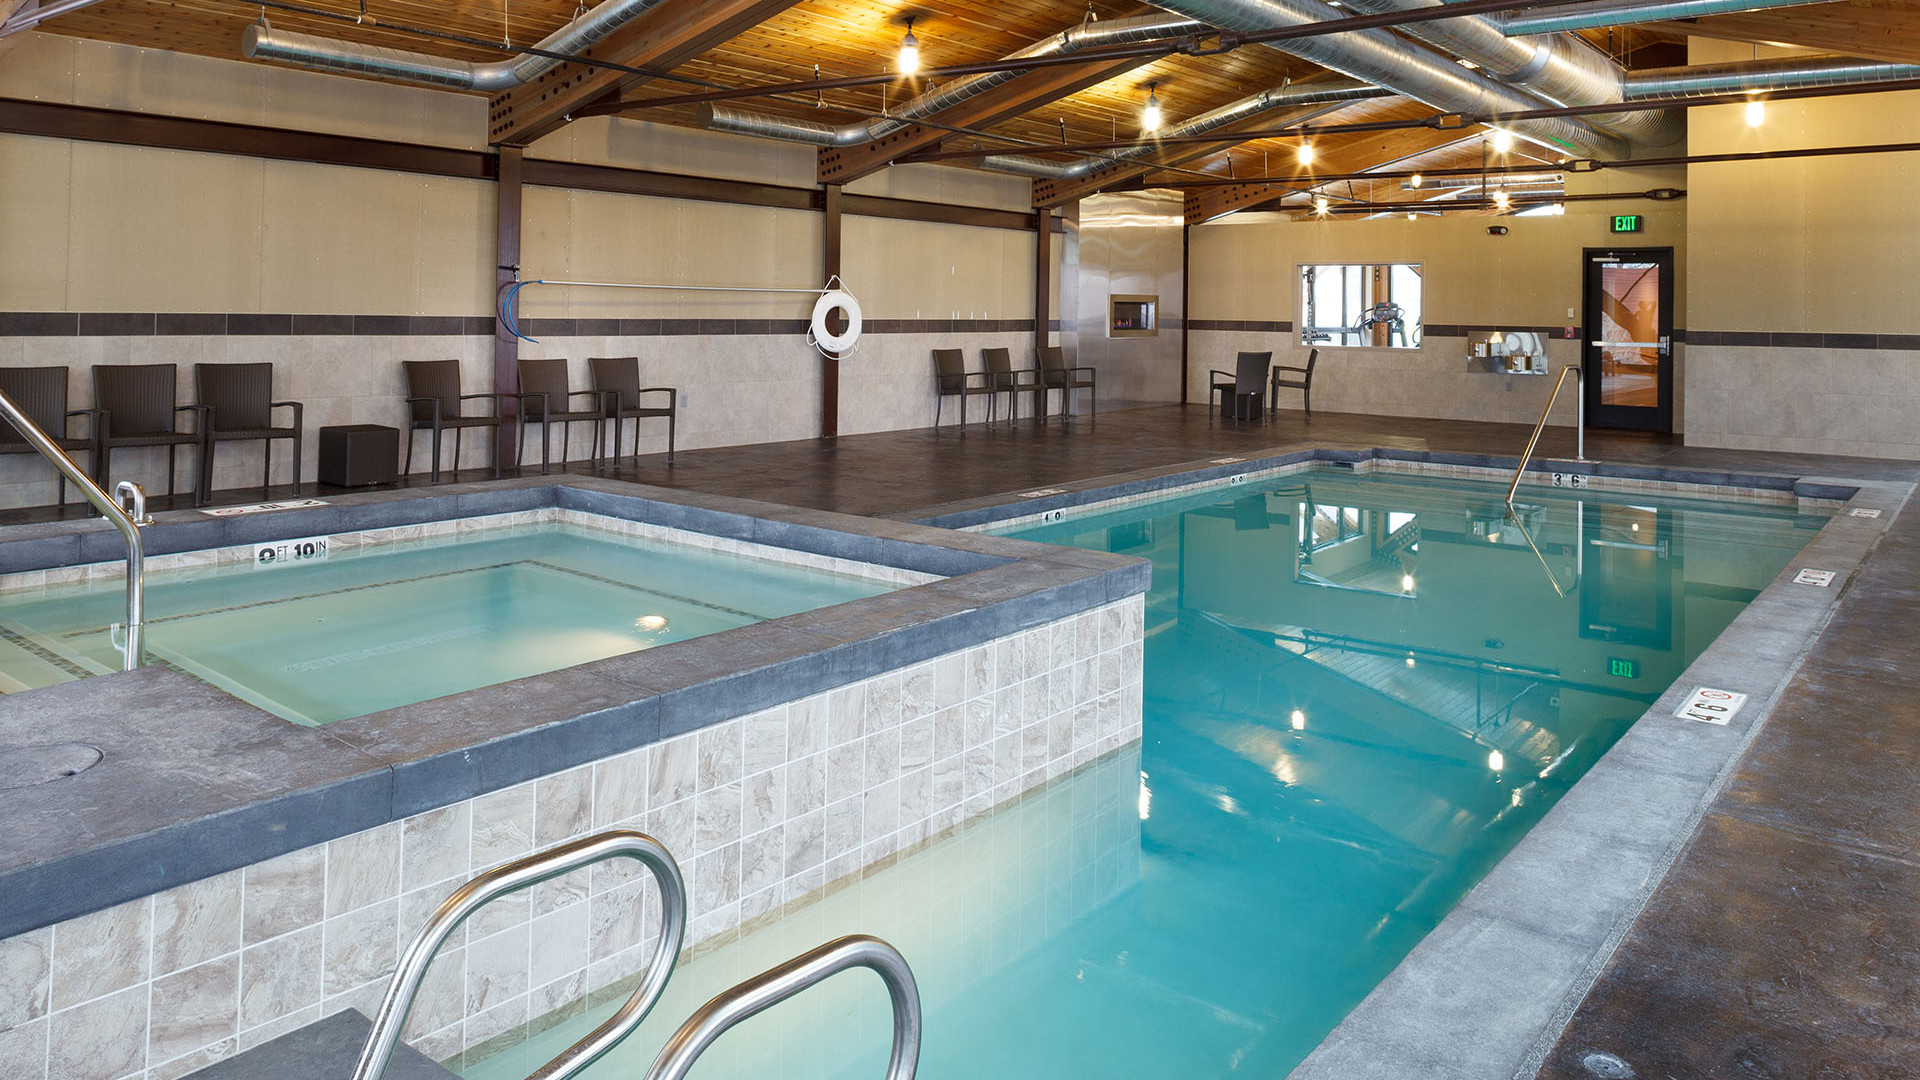 Relax in the indoor pool and hot tub.